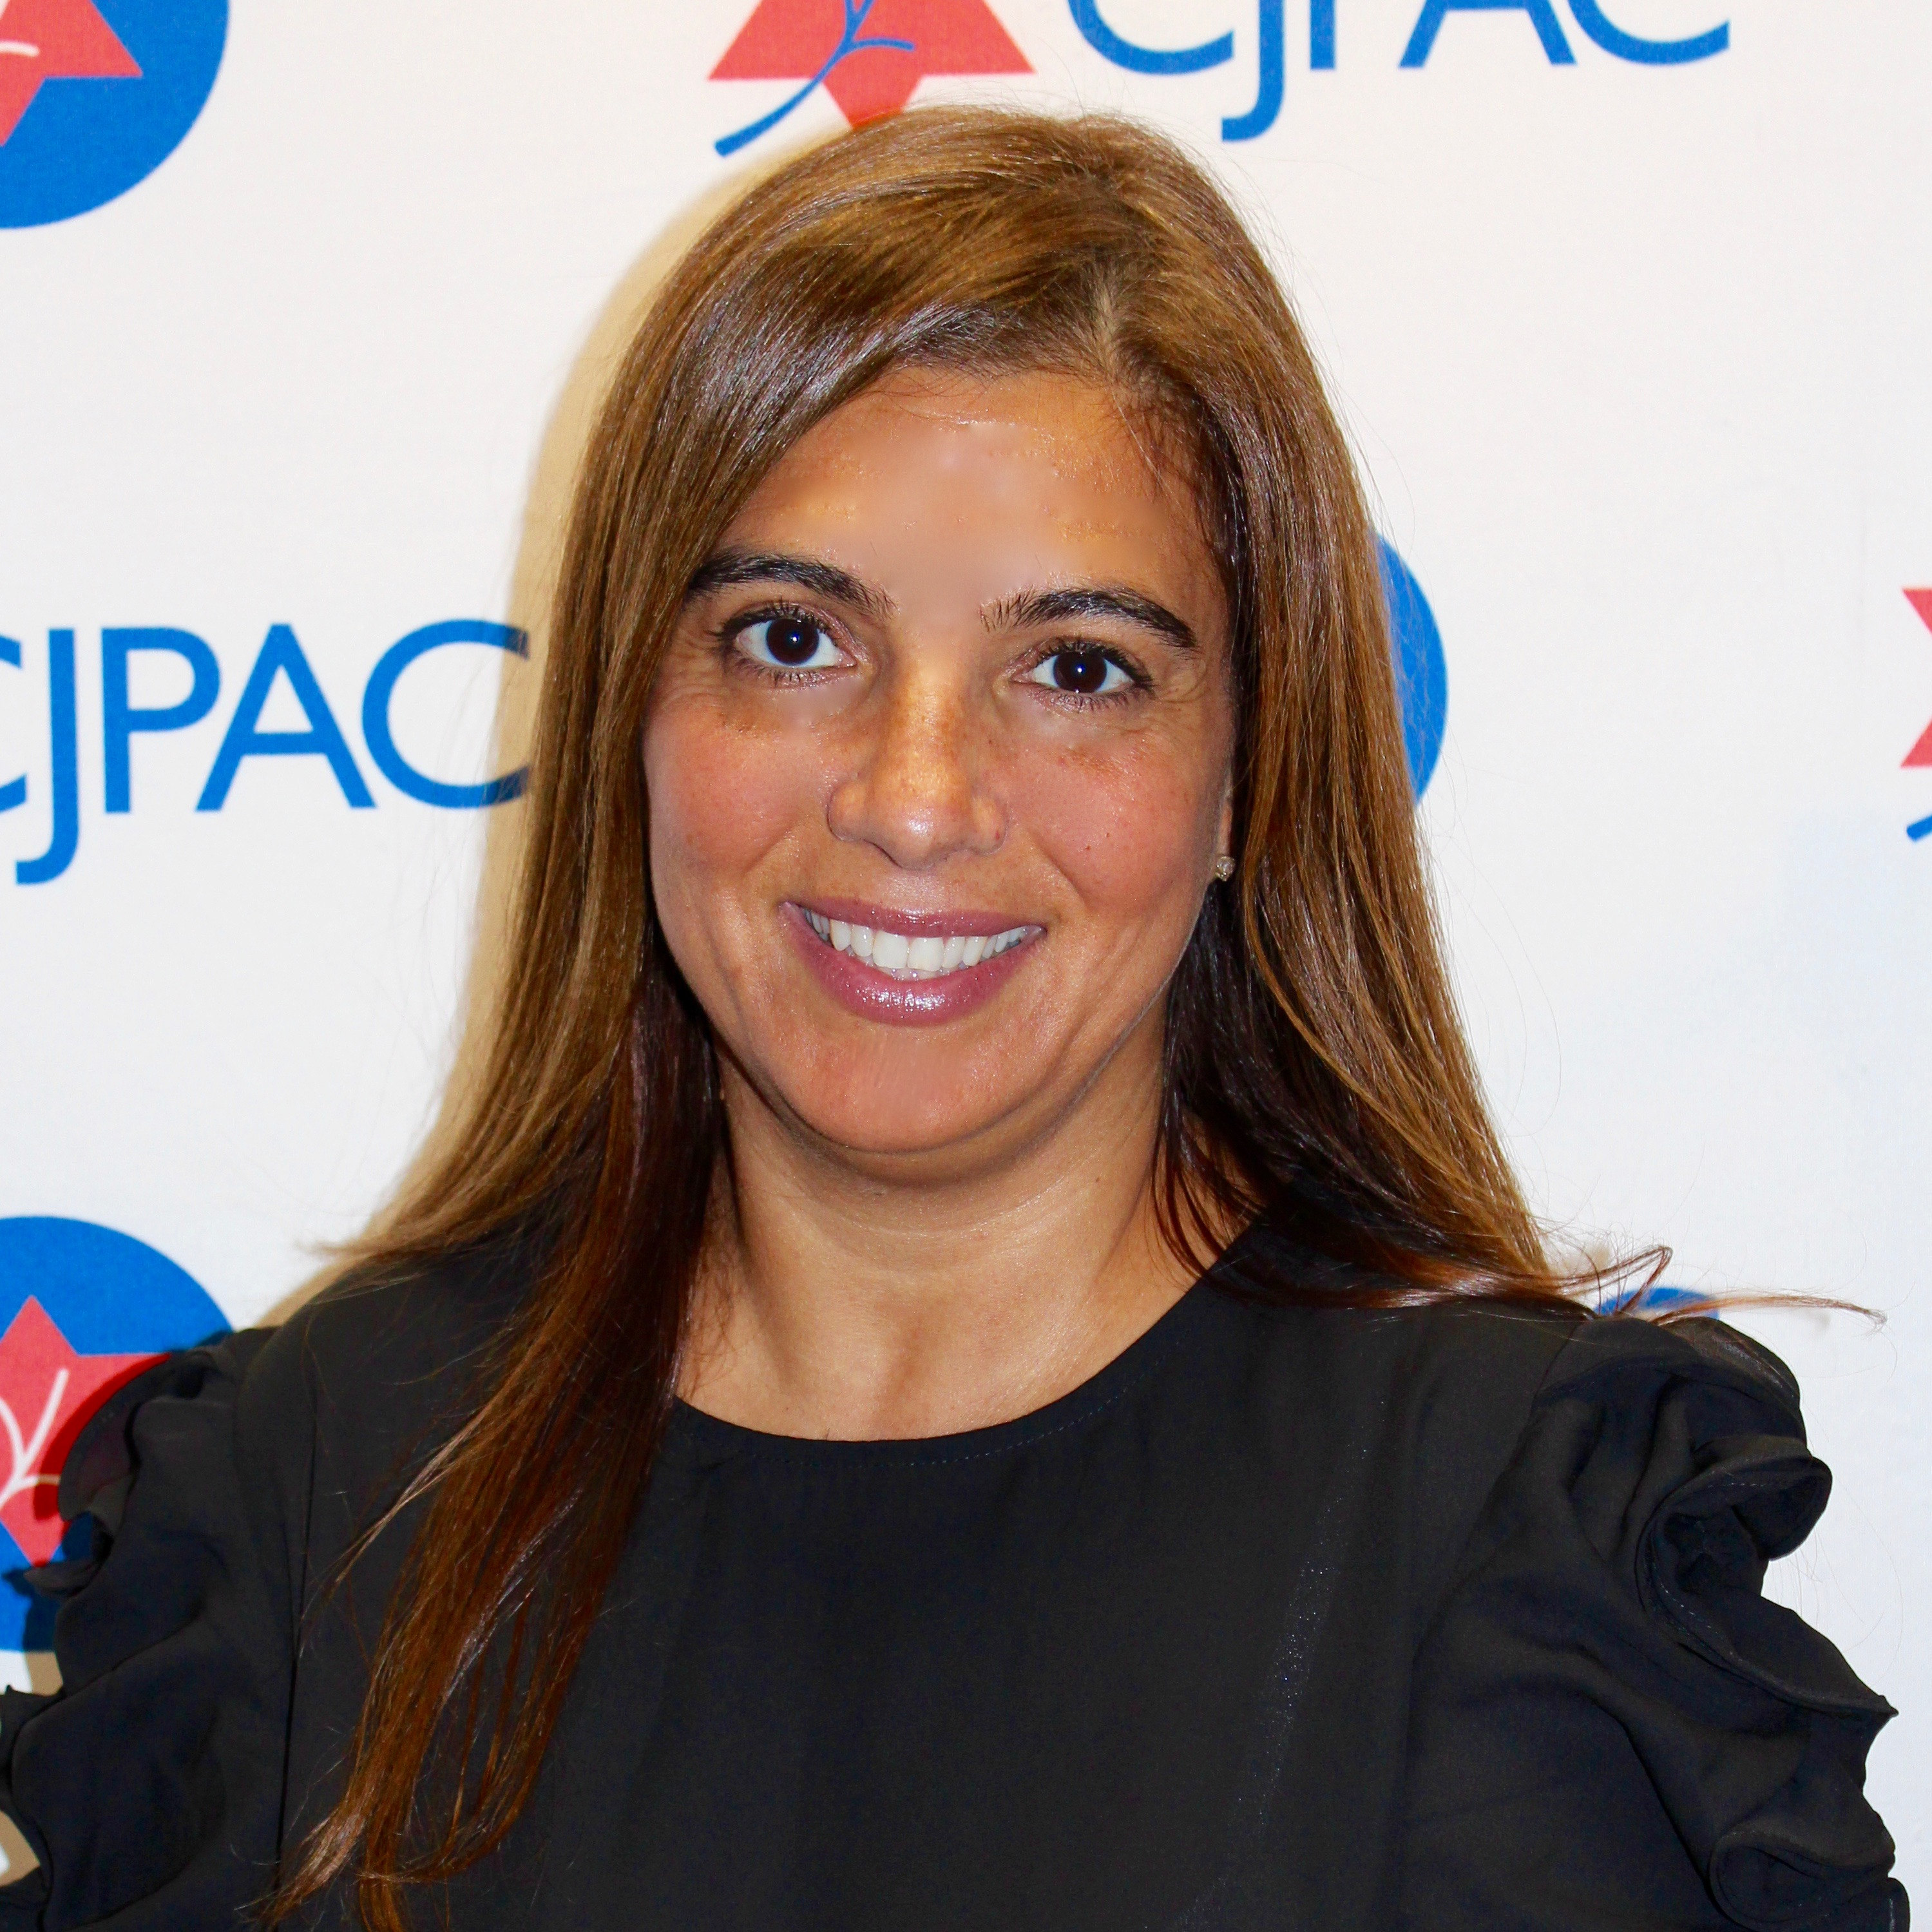 d3afb7d03 We are excited to announce that Vanessa Fhima has joined the CJPAC team as  our new Director for Quebec and Atlantic Regions.